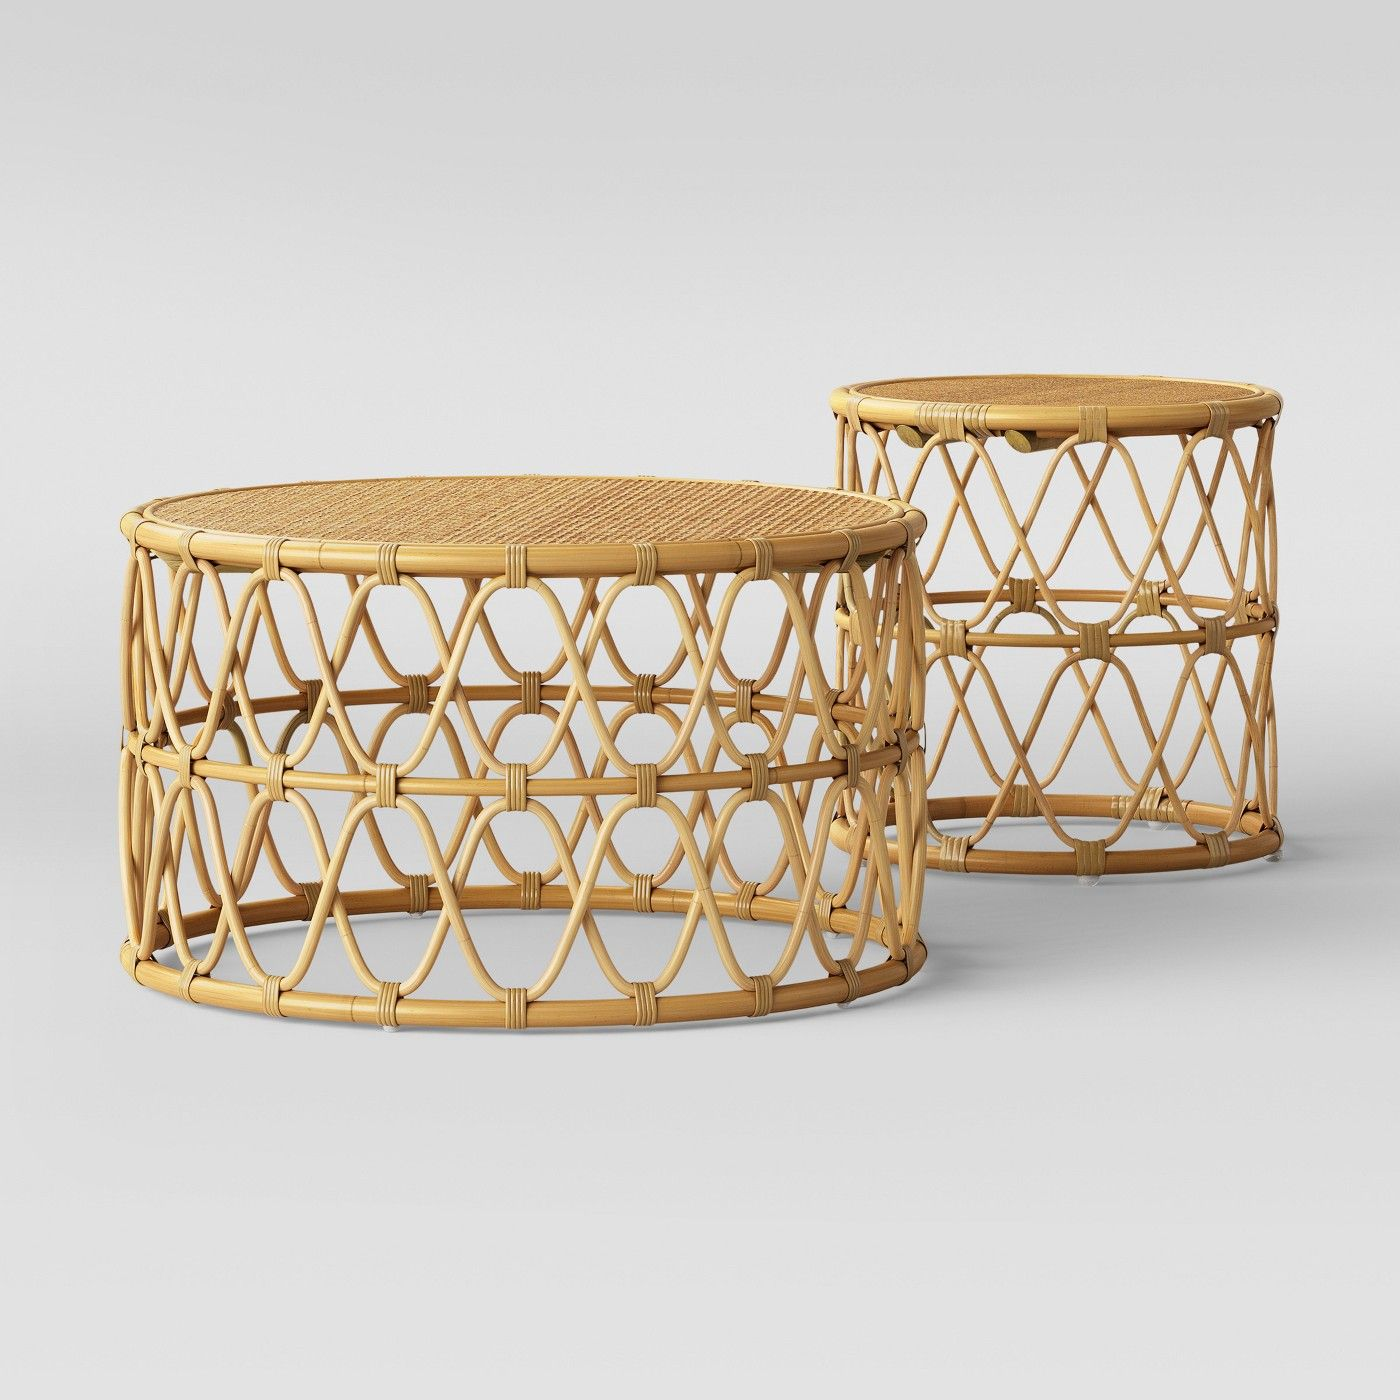 44+ Wicker storage coffee table natural inspirations